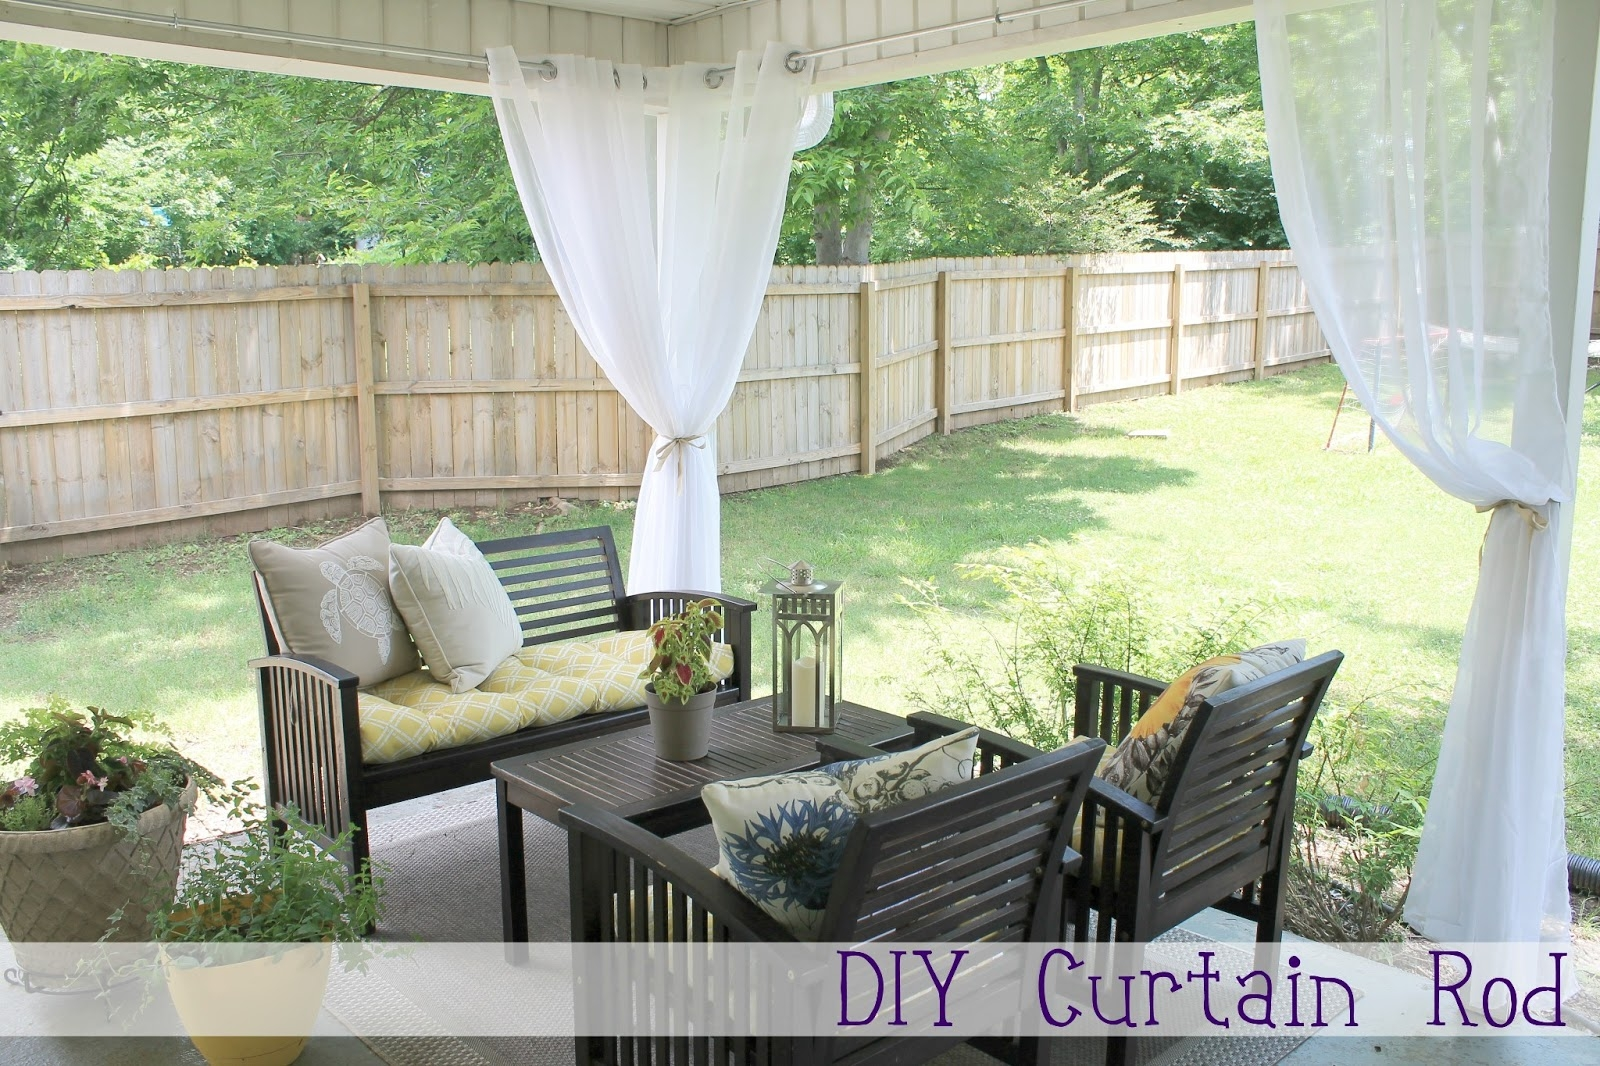 Chippasunshine Diy Curtain Rod Throughout Extra Long Outdoor Curtain Rods (Image 2 of 25)